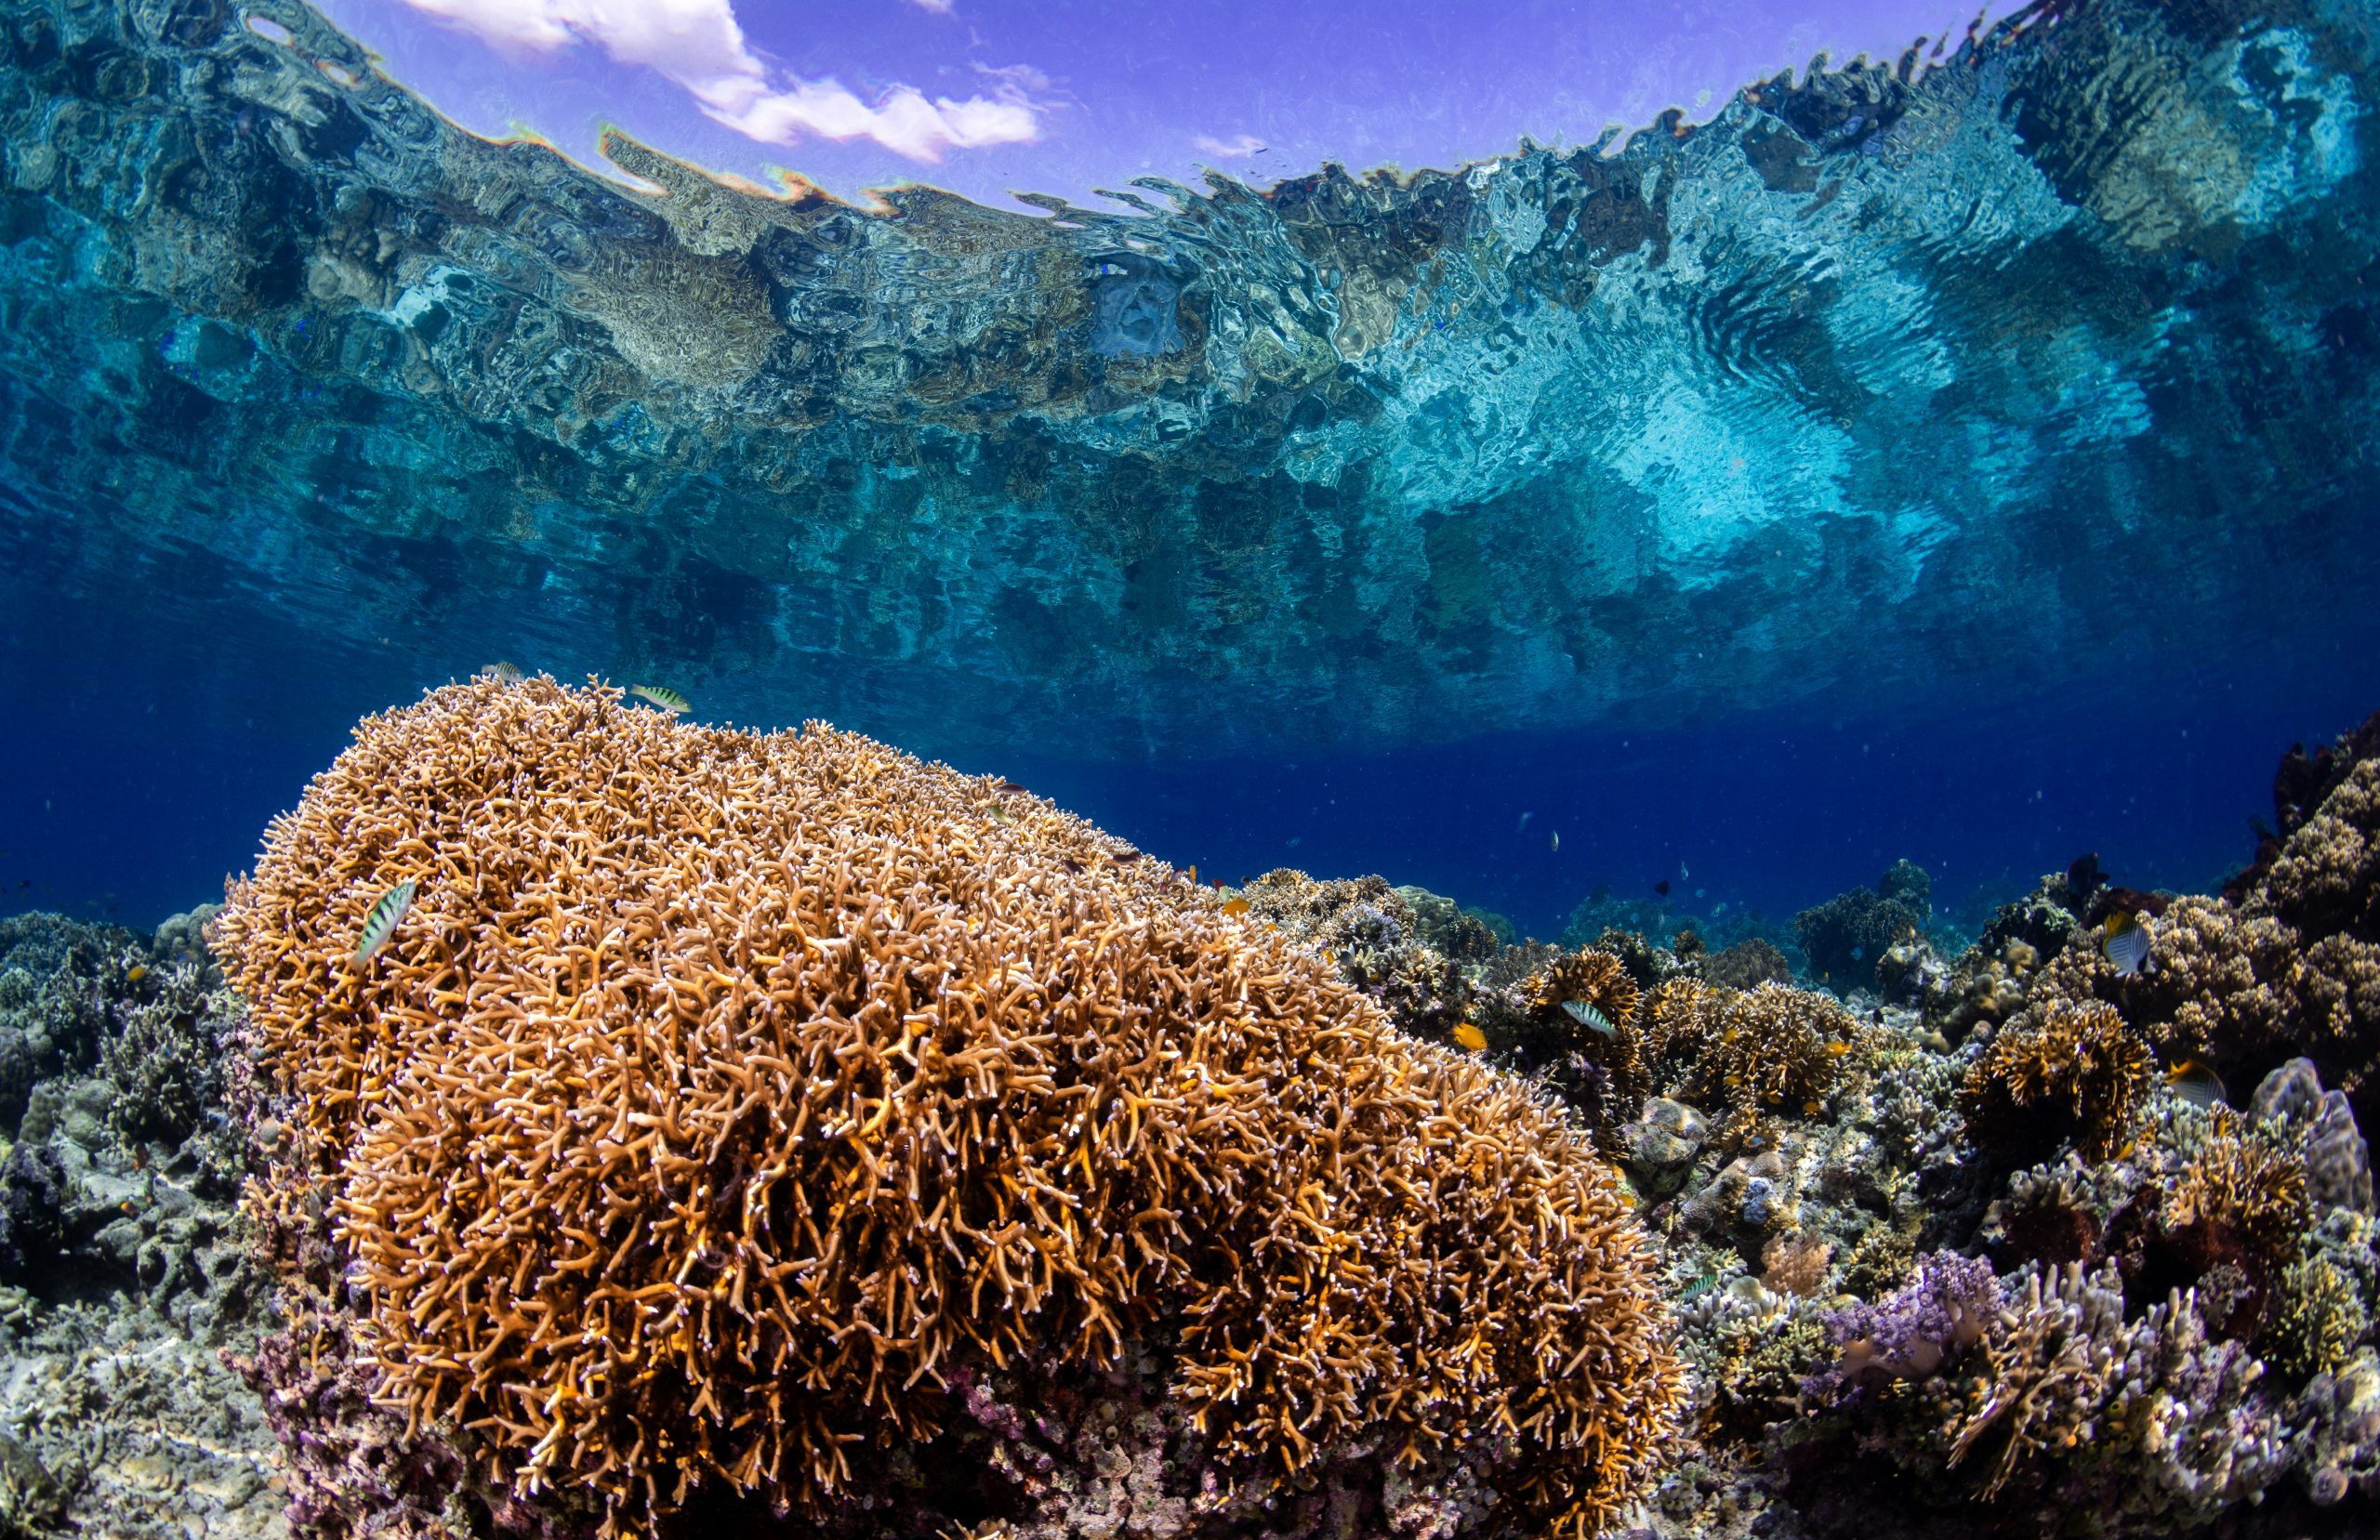 Healthy coral reef view from under with crystal water letting us see the topography outside of the water.